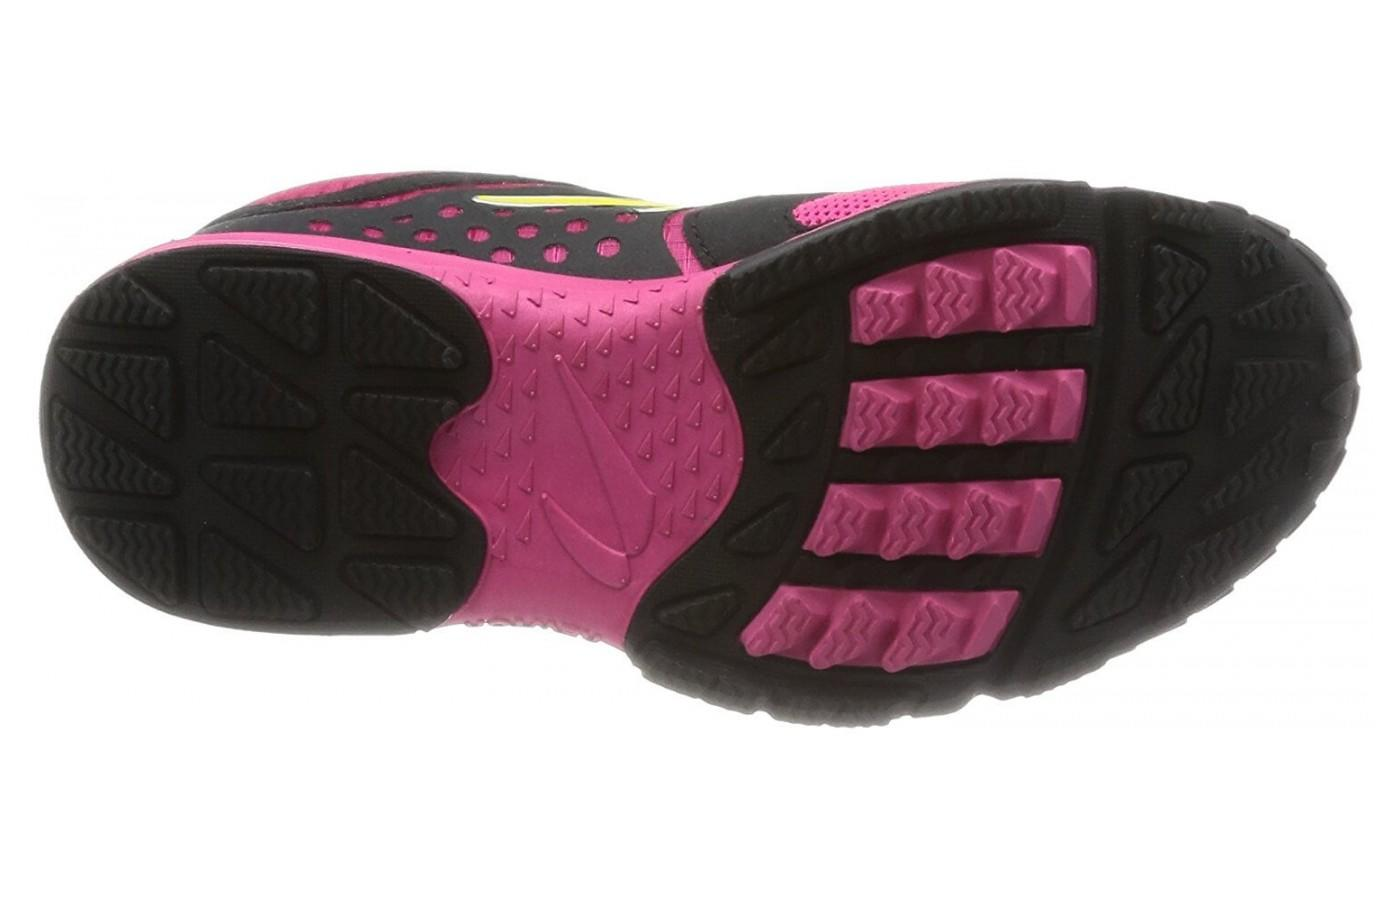 the Newton BoCo AT has multi-directional lugs for traction and four-lug cushioning for comfort